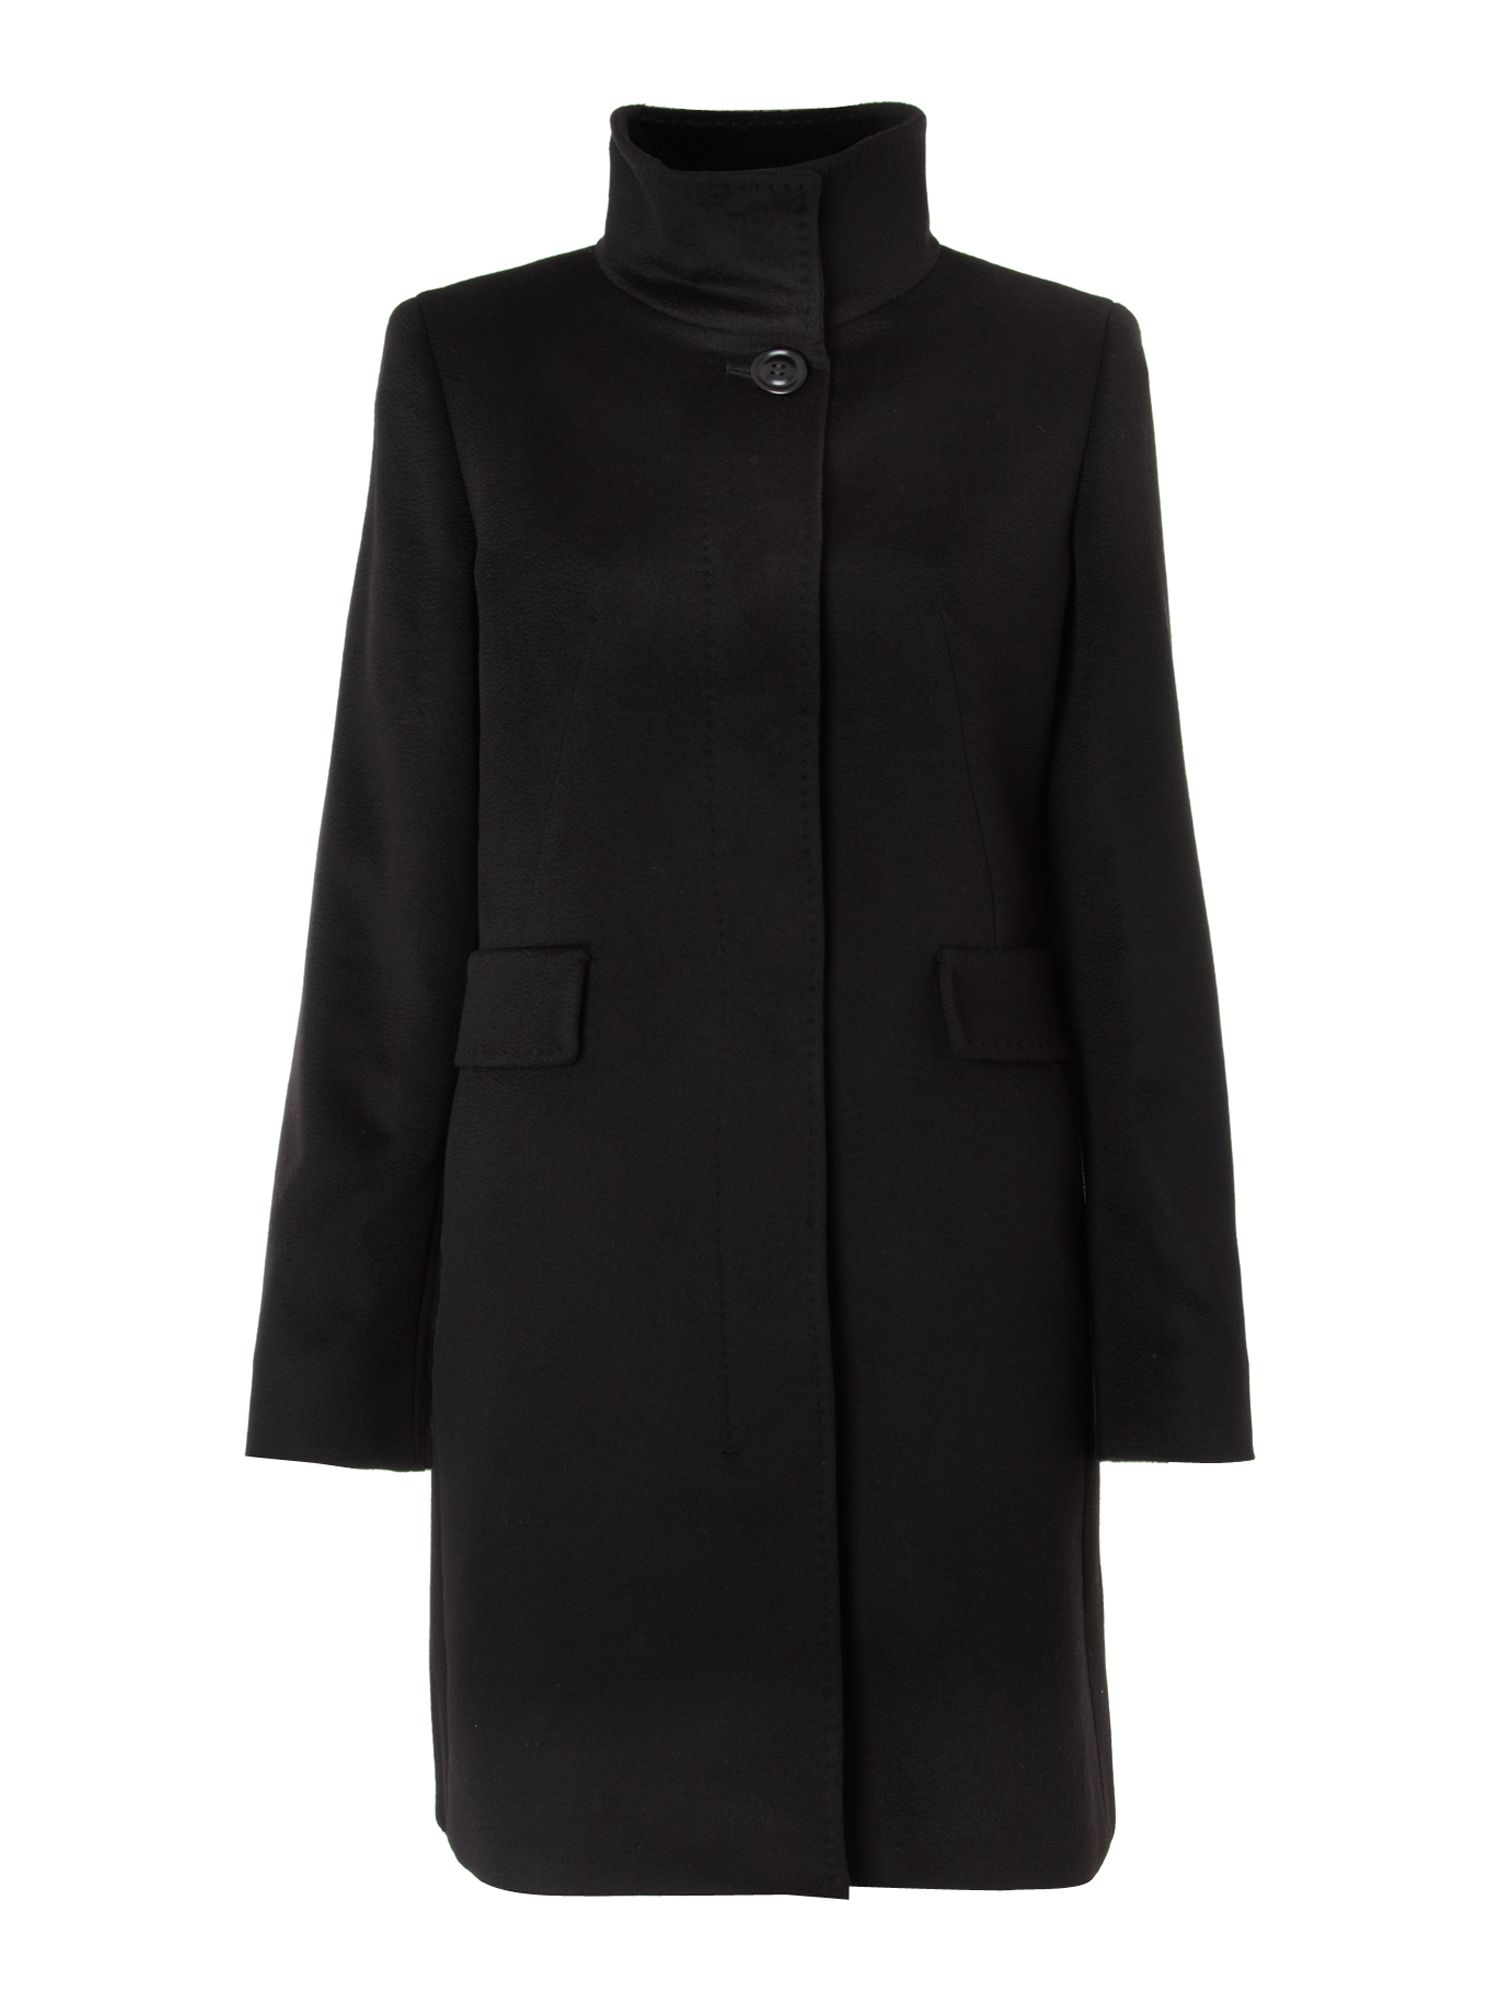 Women's MaxMara Studio Agnese funnel neck wool coat, Black